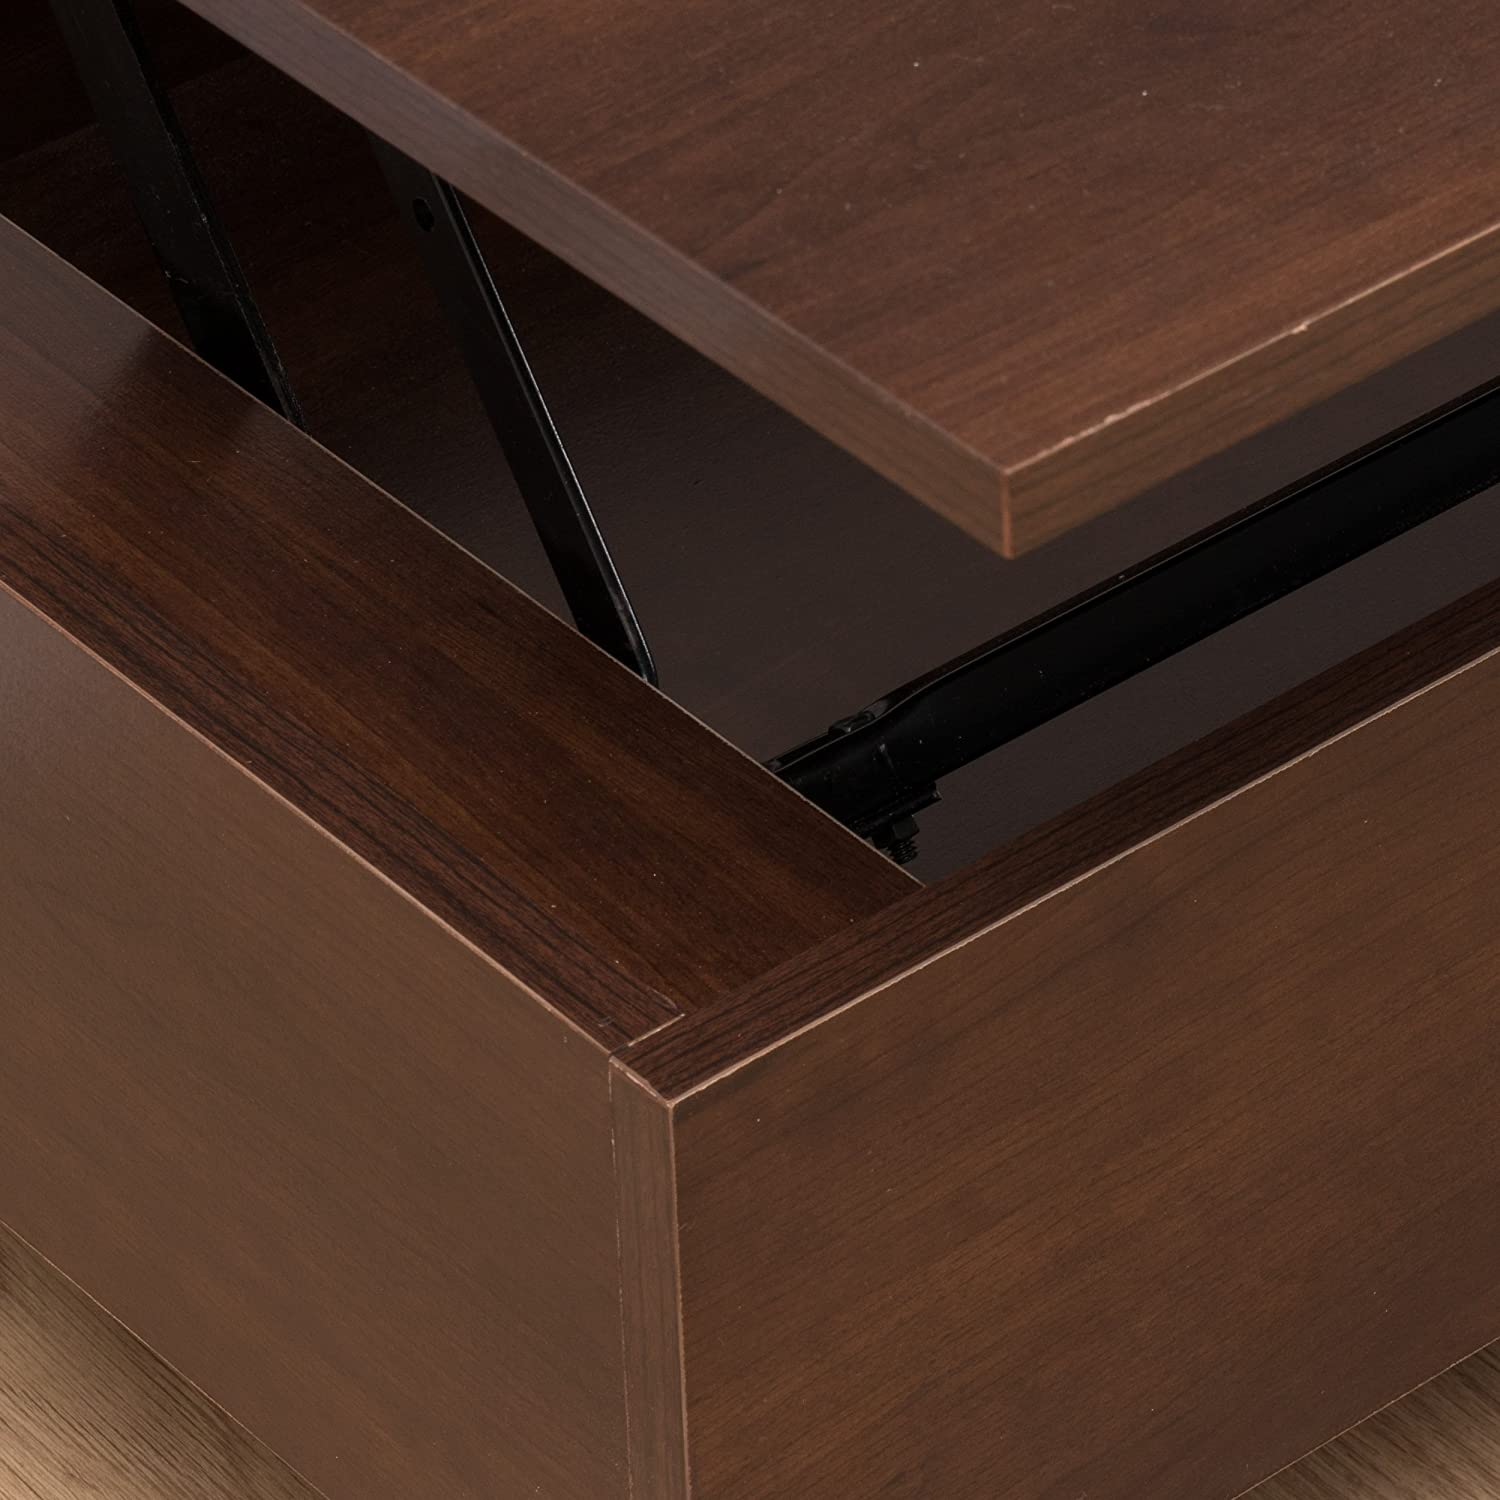 Amazon Caleb Mahogany Wood Lift Top Storage Coffee Table